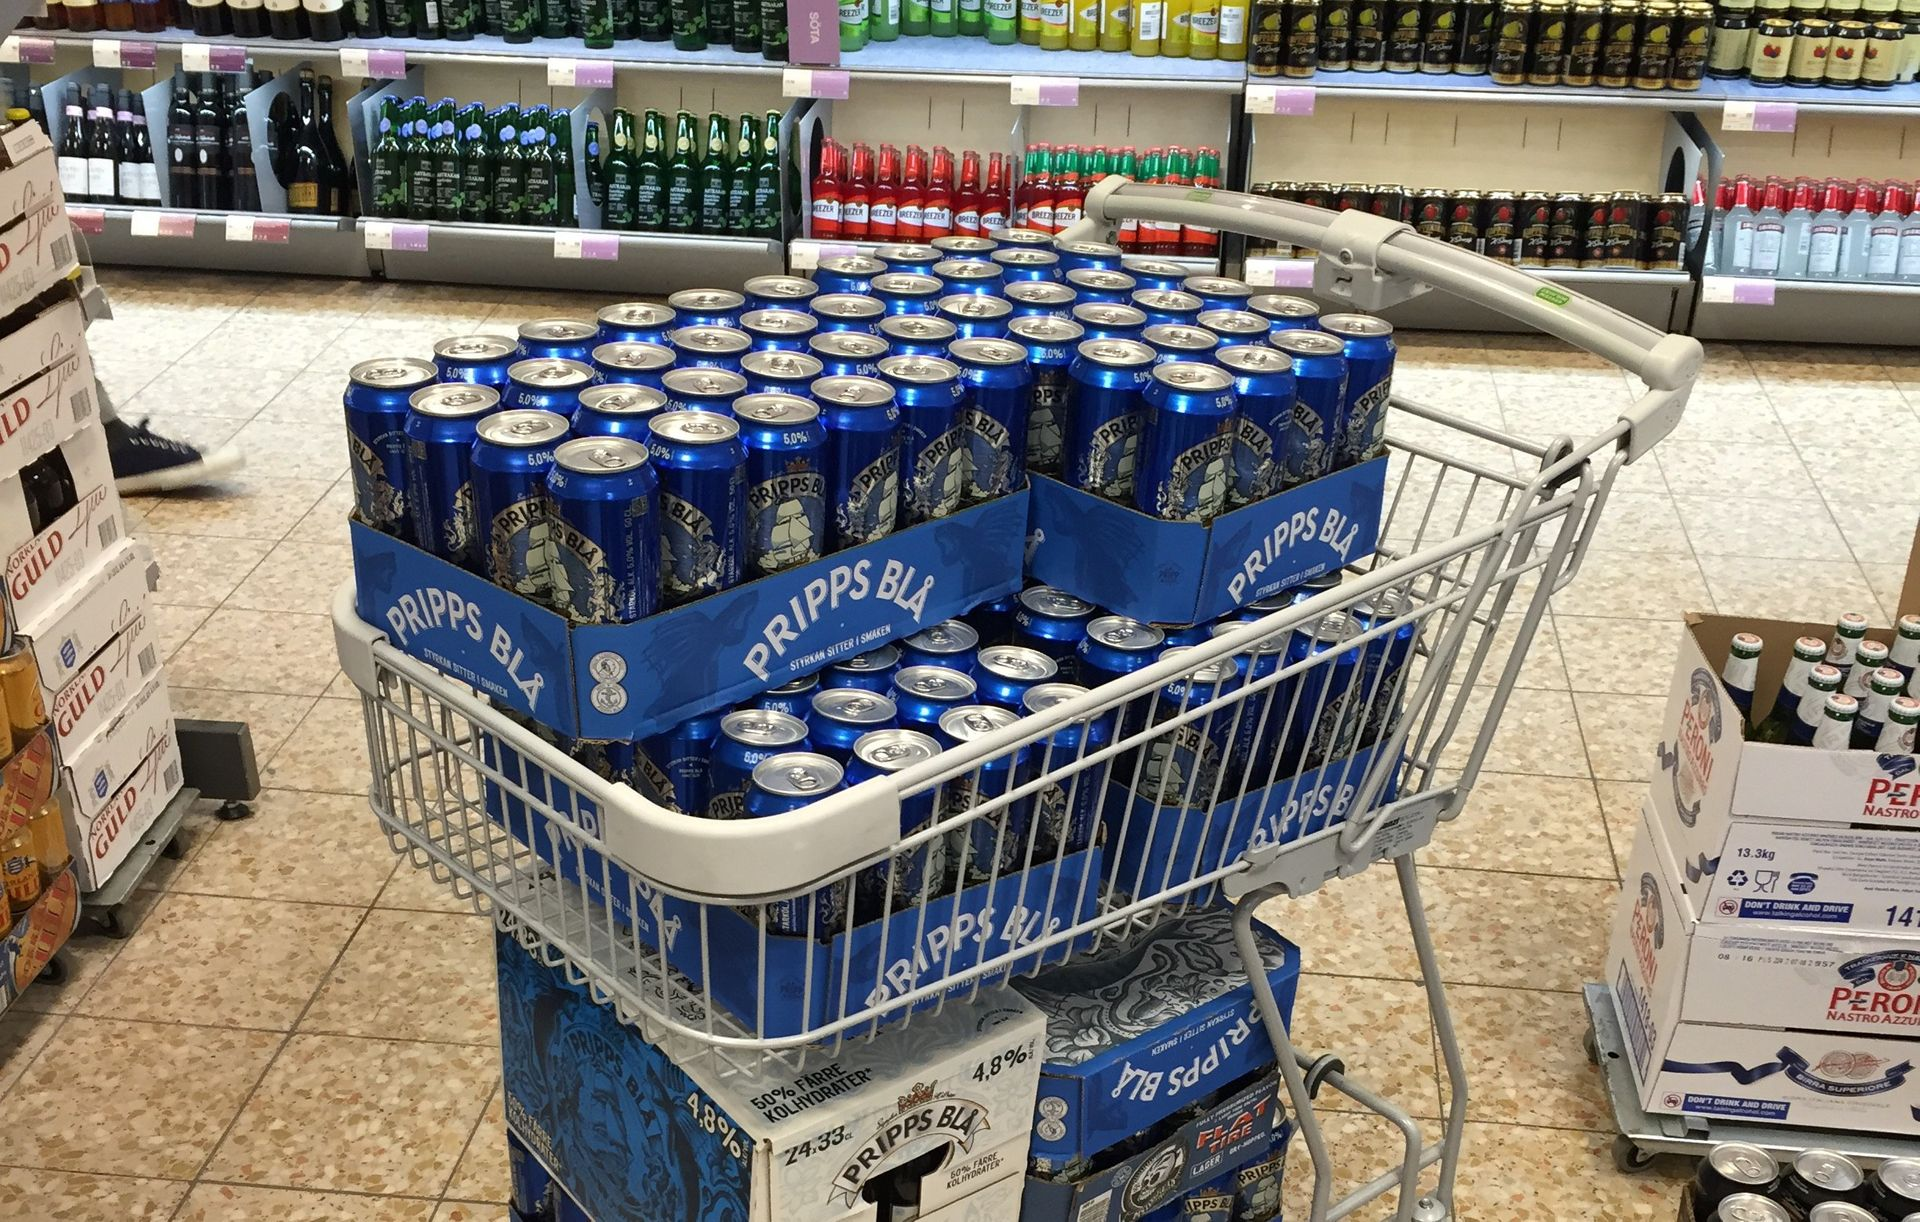 Trolley full of beer cans.